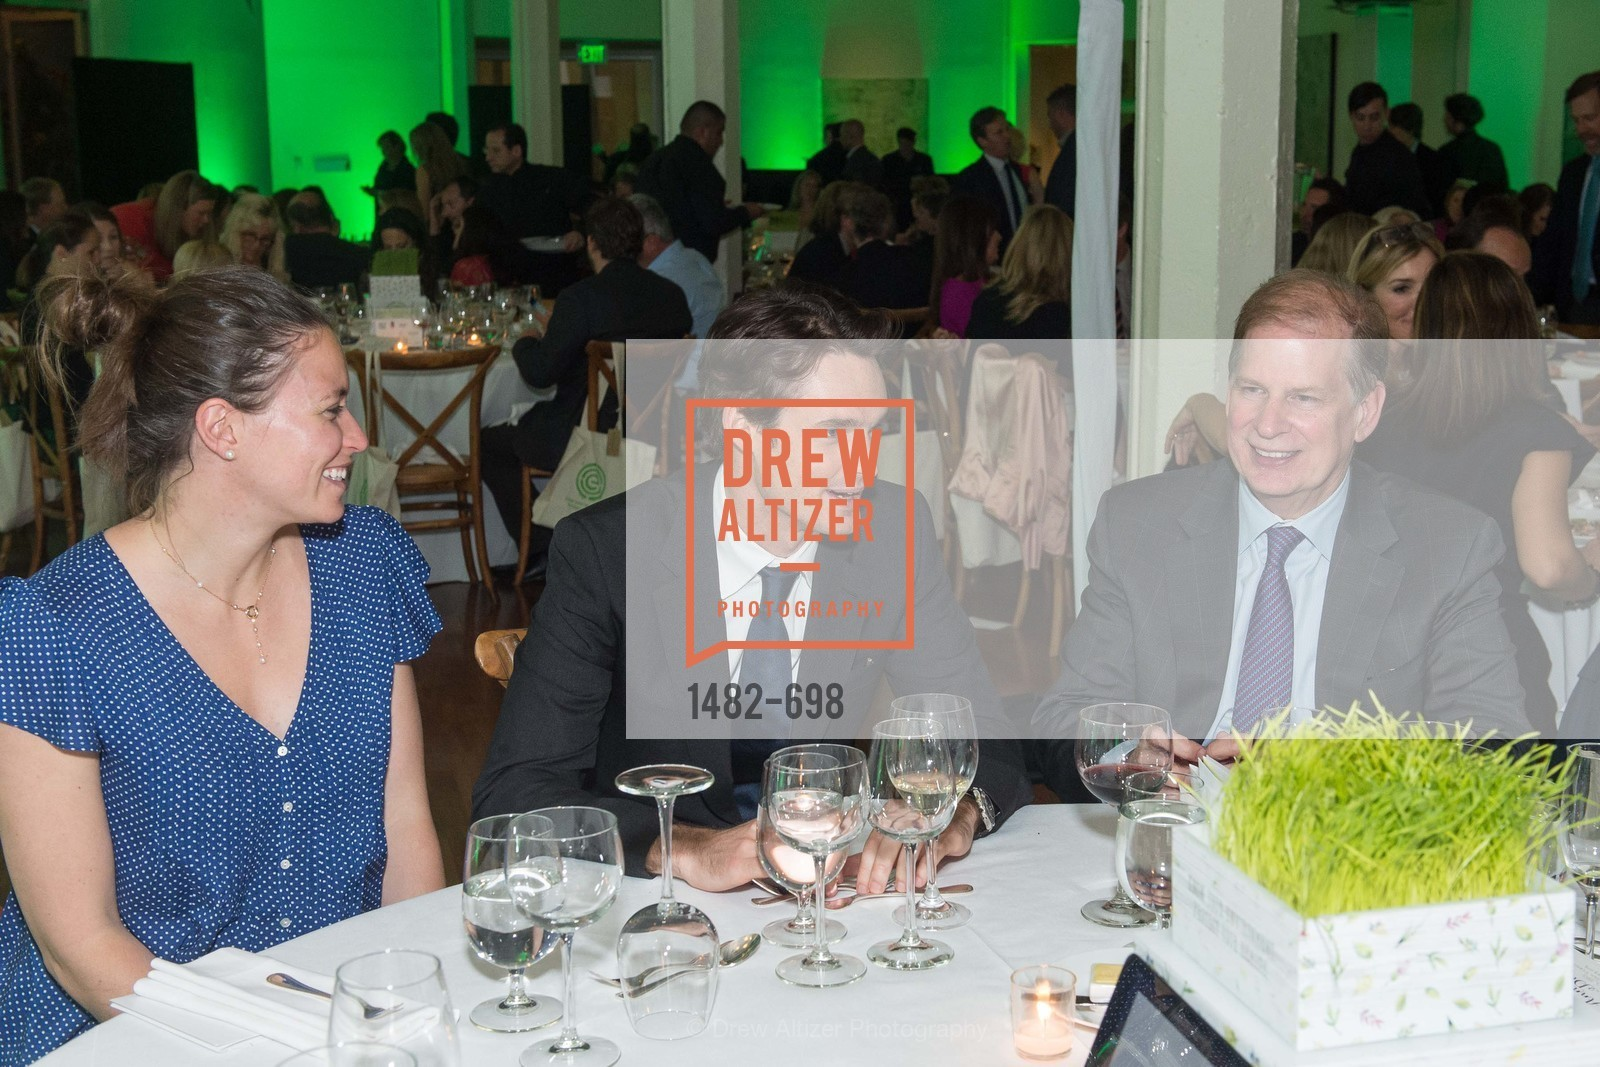 Myriam Desmarais, Nicolas Desmarais, Robert Fetherstonehaugh, EWG's 6th Annual Earth Dinner, US, May 5th, 2015,Drew Altizer, Drew Altizer Photography, full-service agency, private events, San Francisco photographer, photographer california